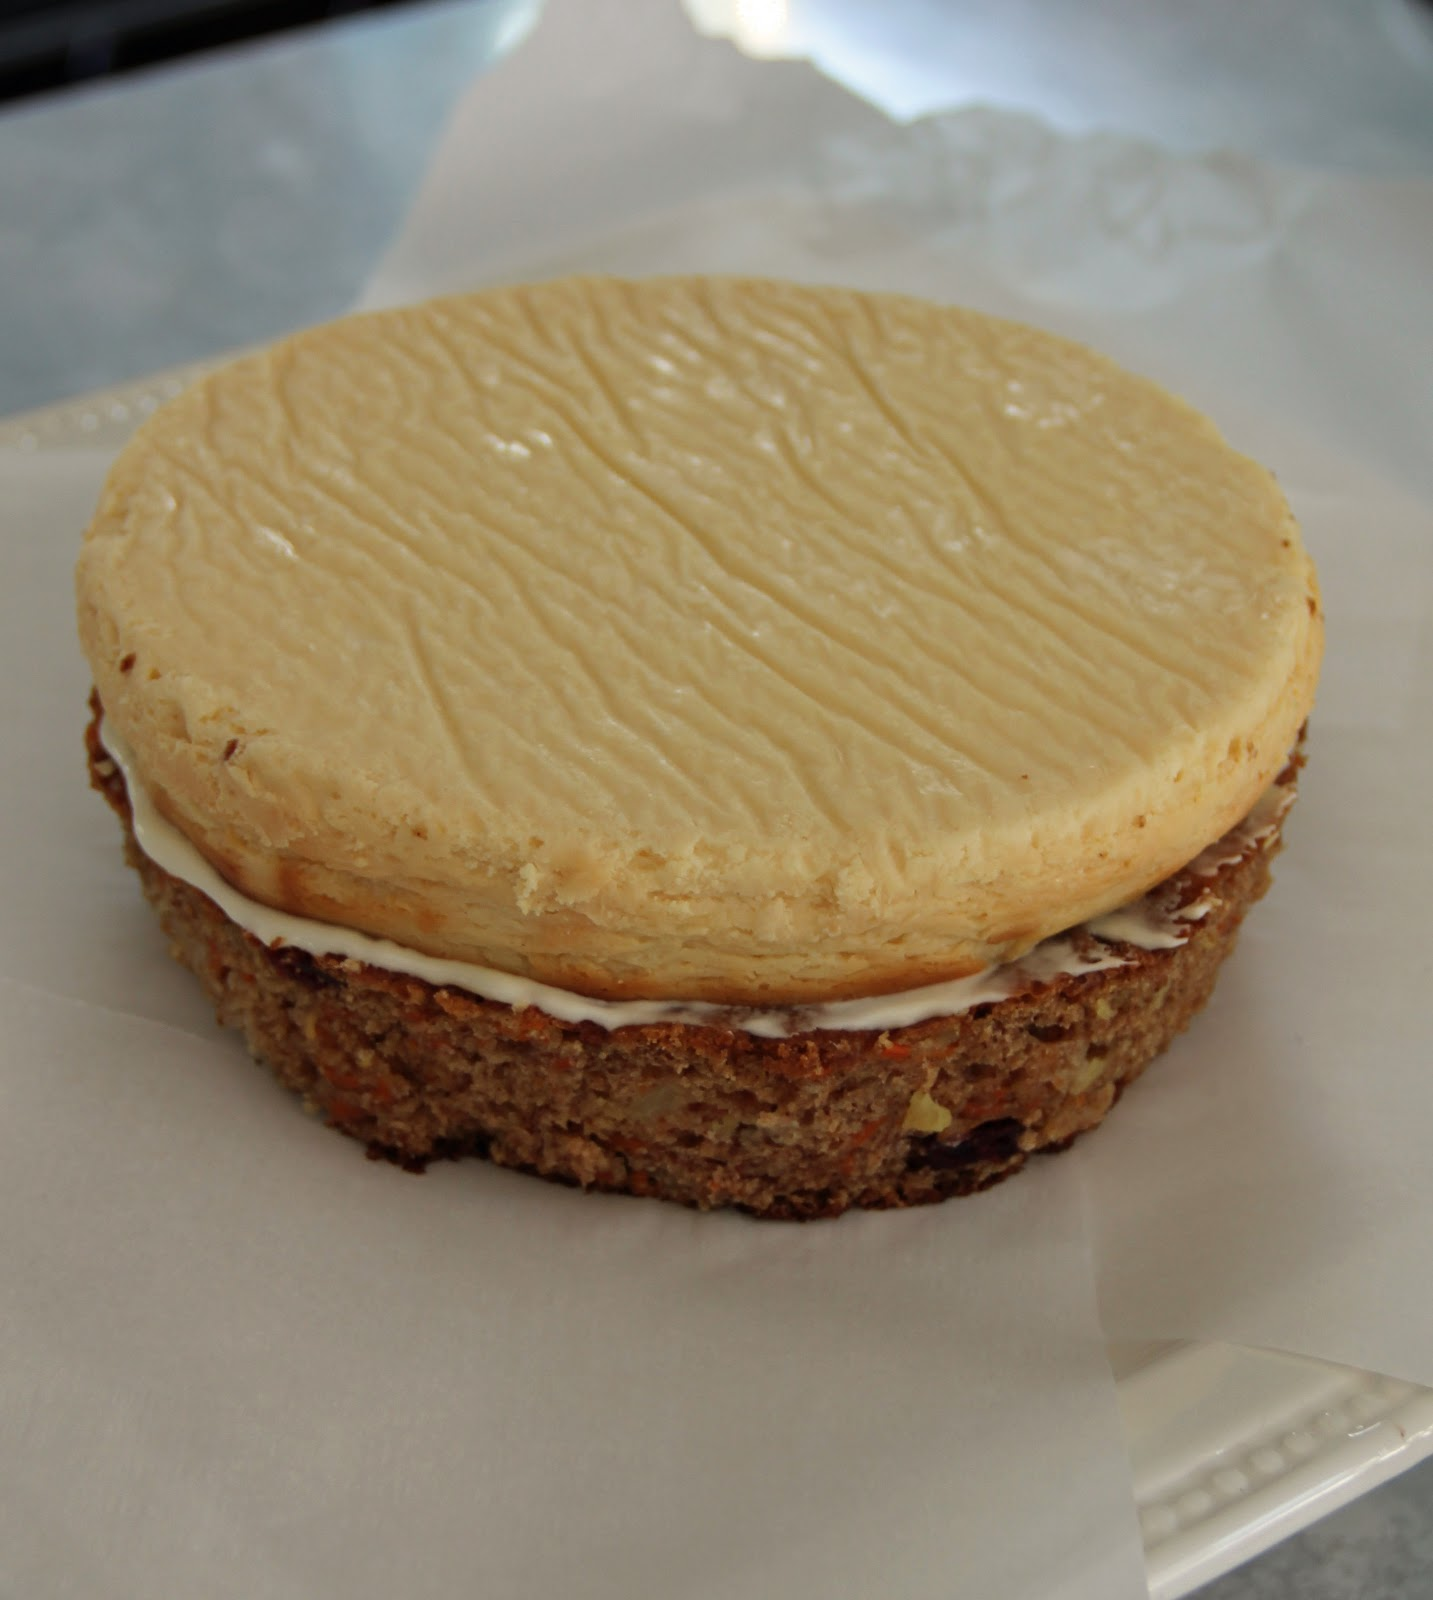 Can You Freeze Carrot Cake With Cream Chesse Icing